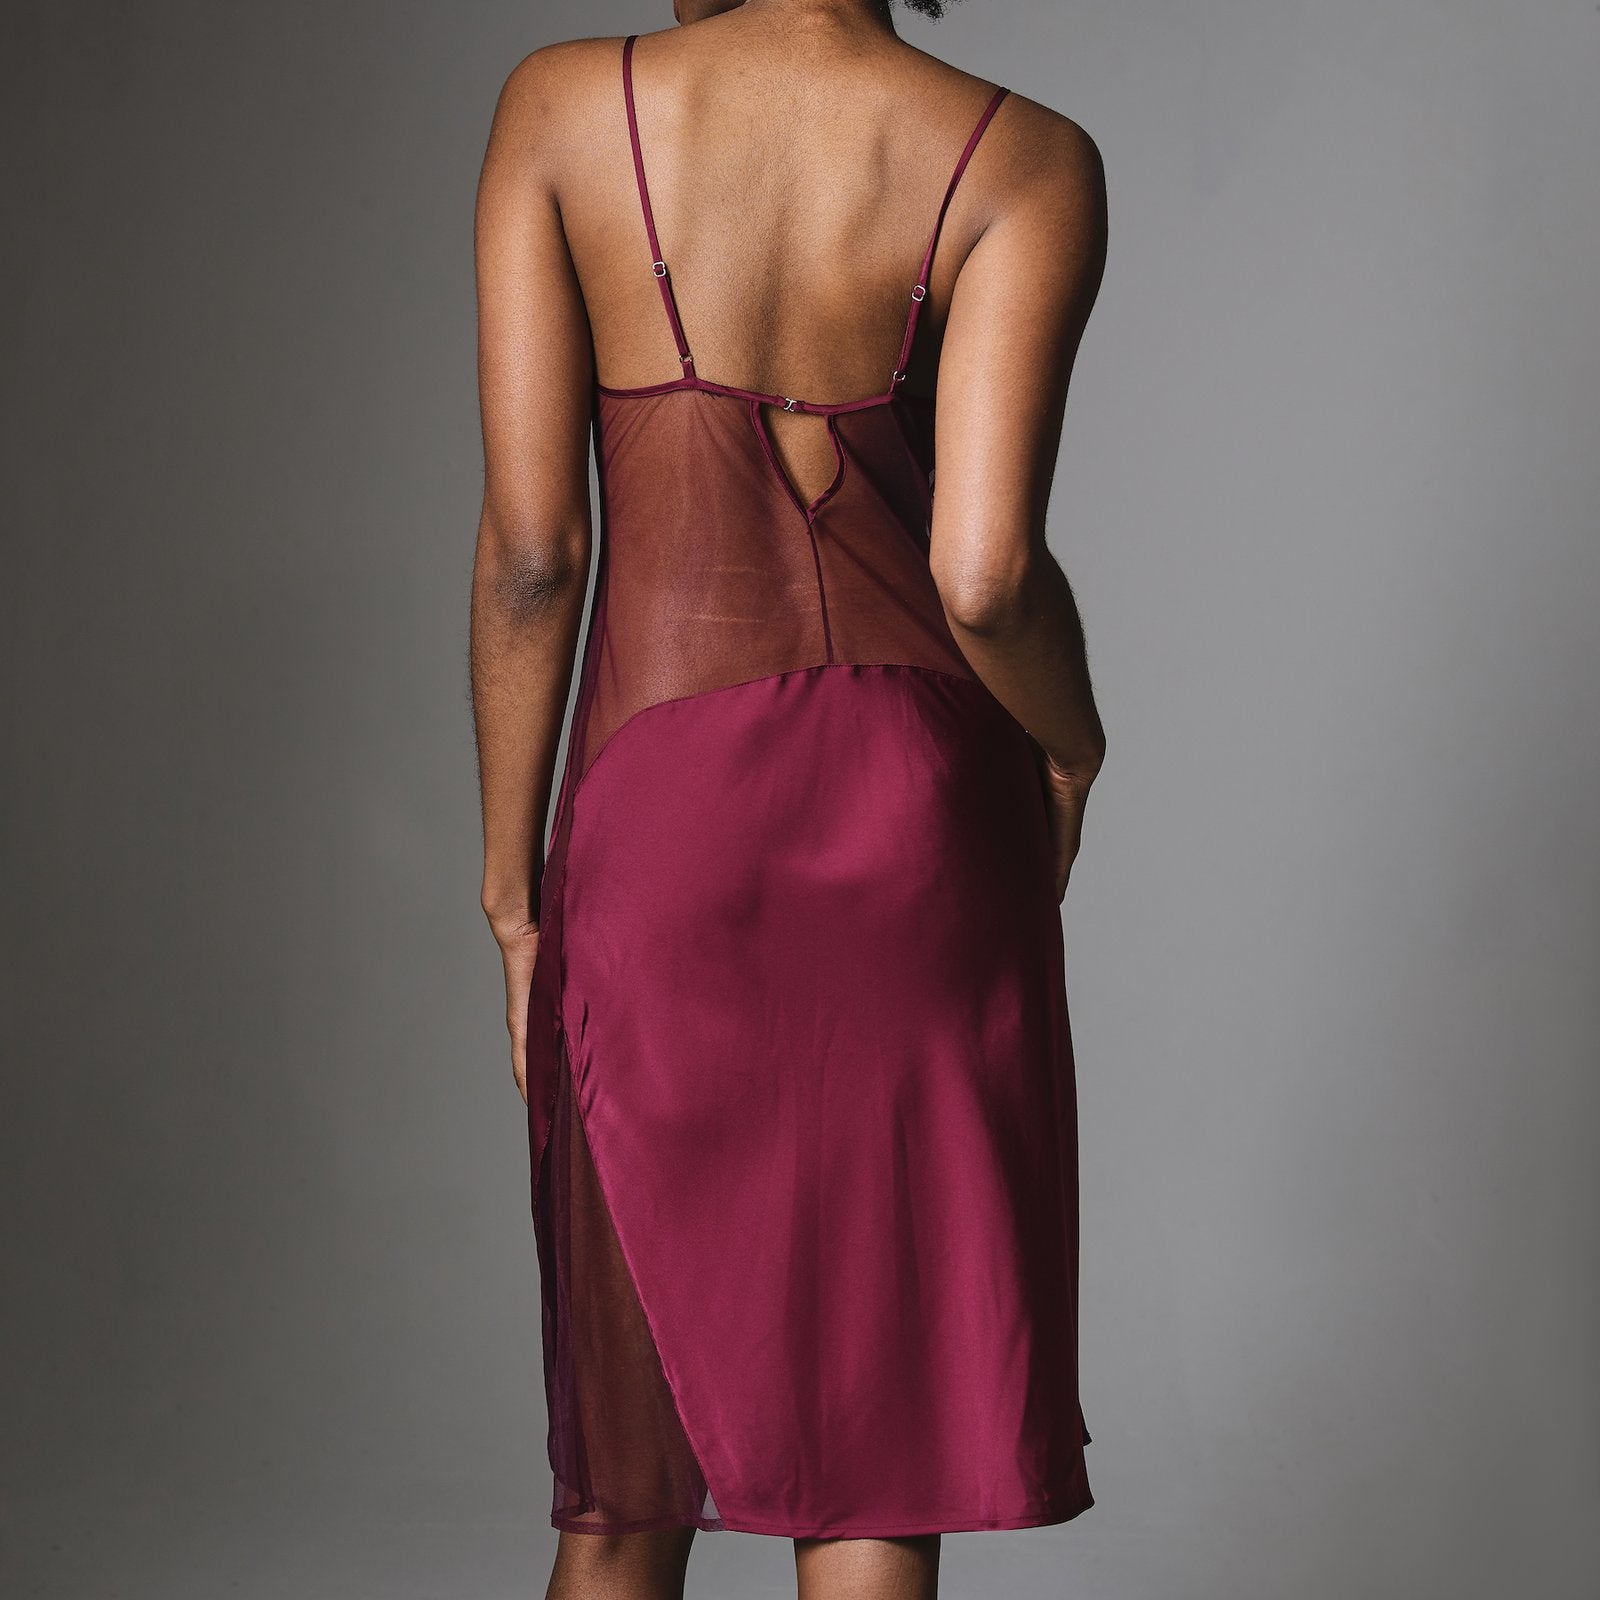 luxurious-burgundy-silk-slip-sheer-mesh